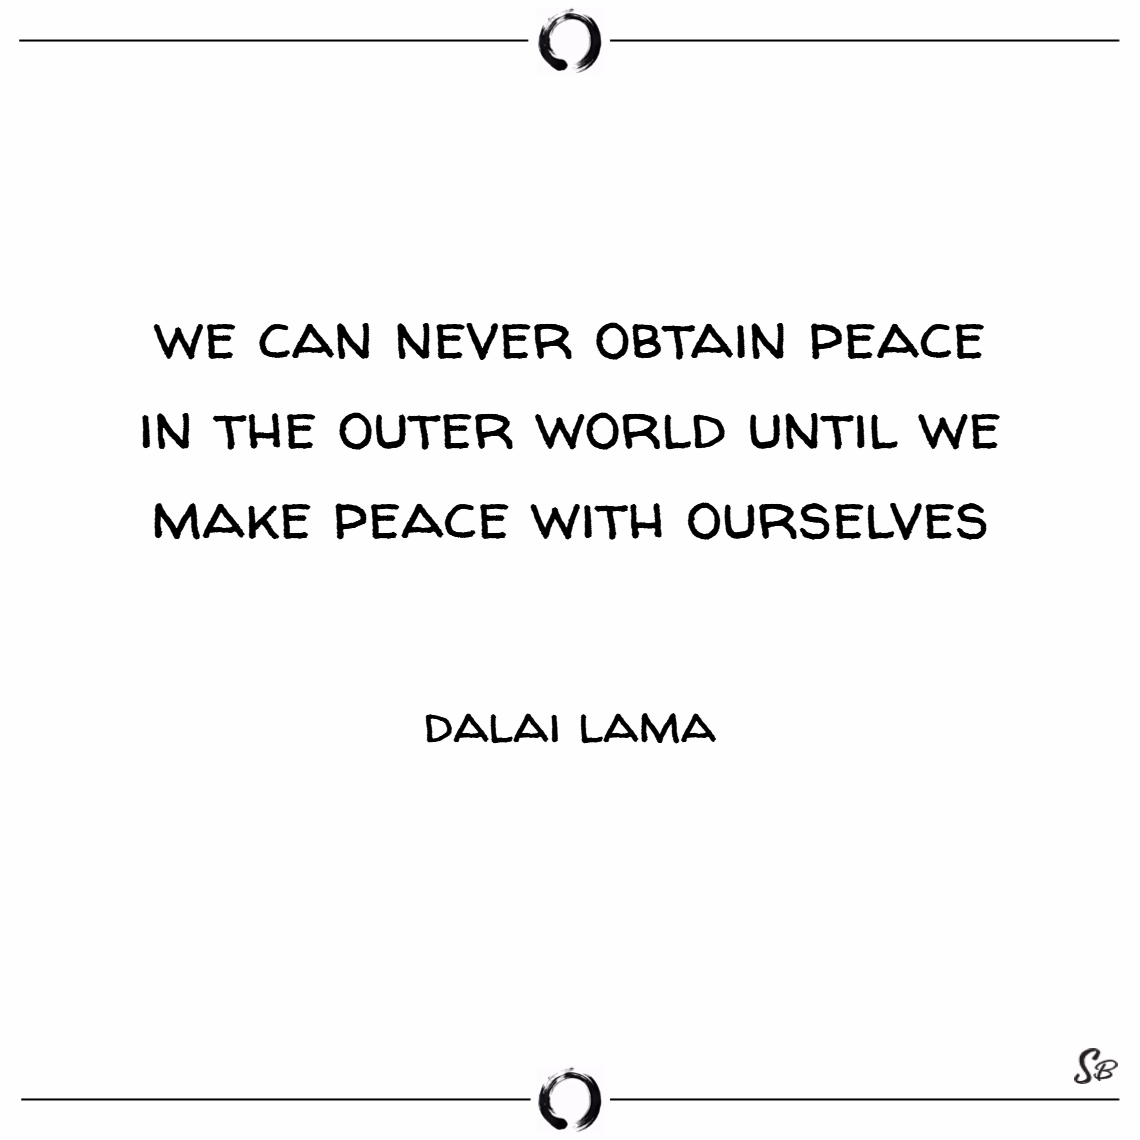 We can never obtain peace in the outer world until